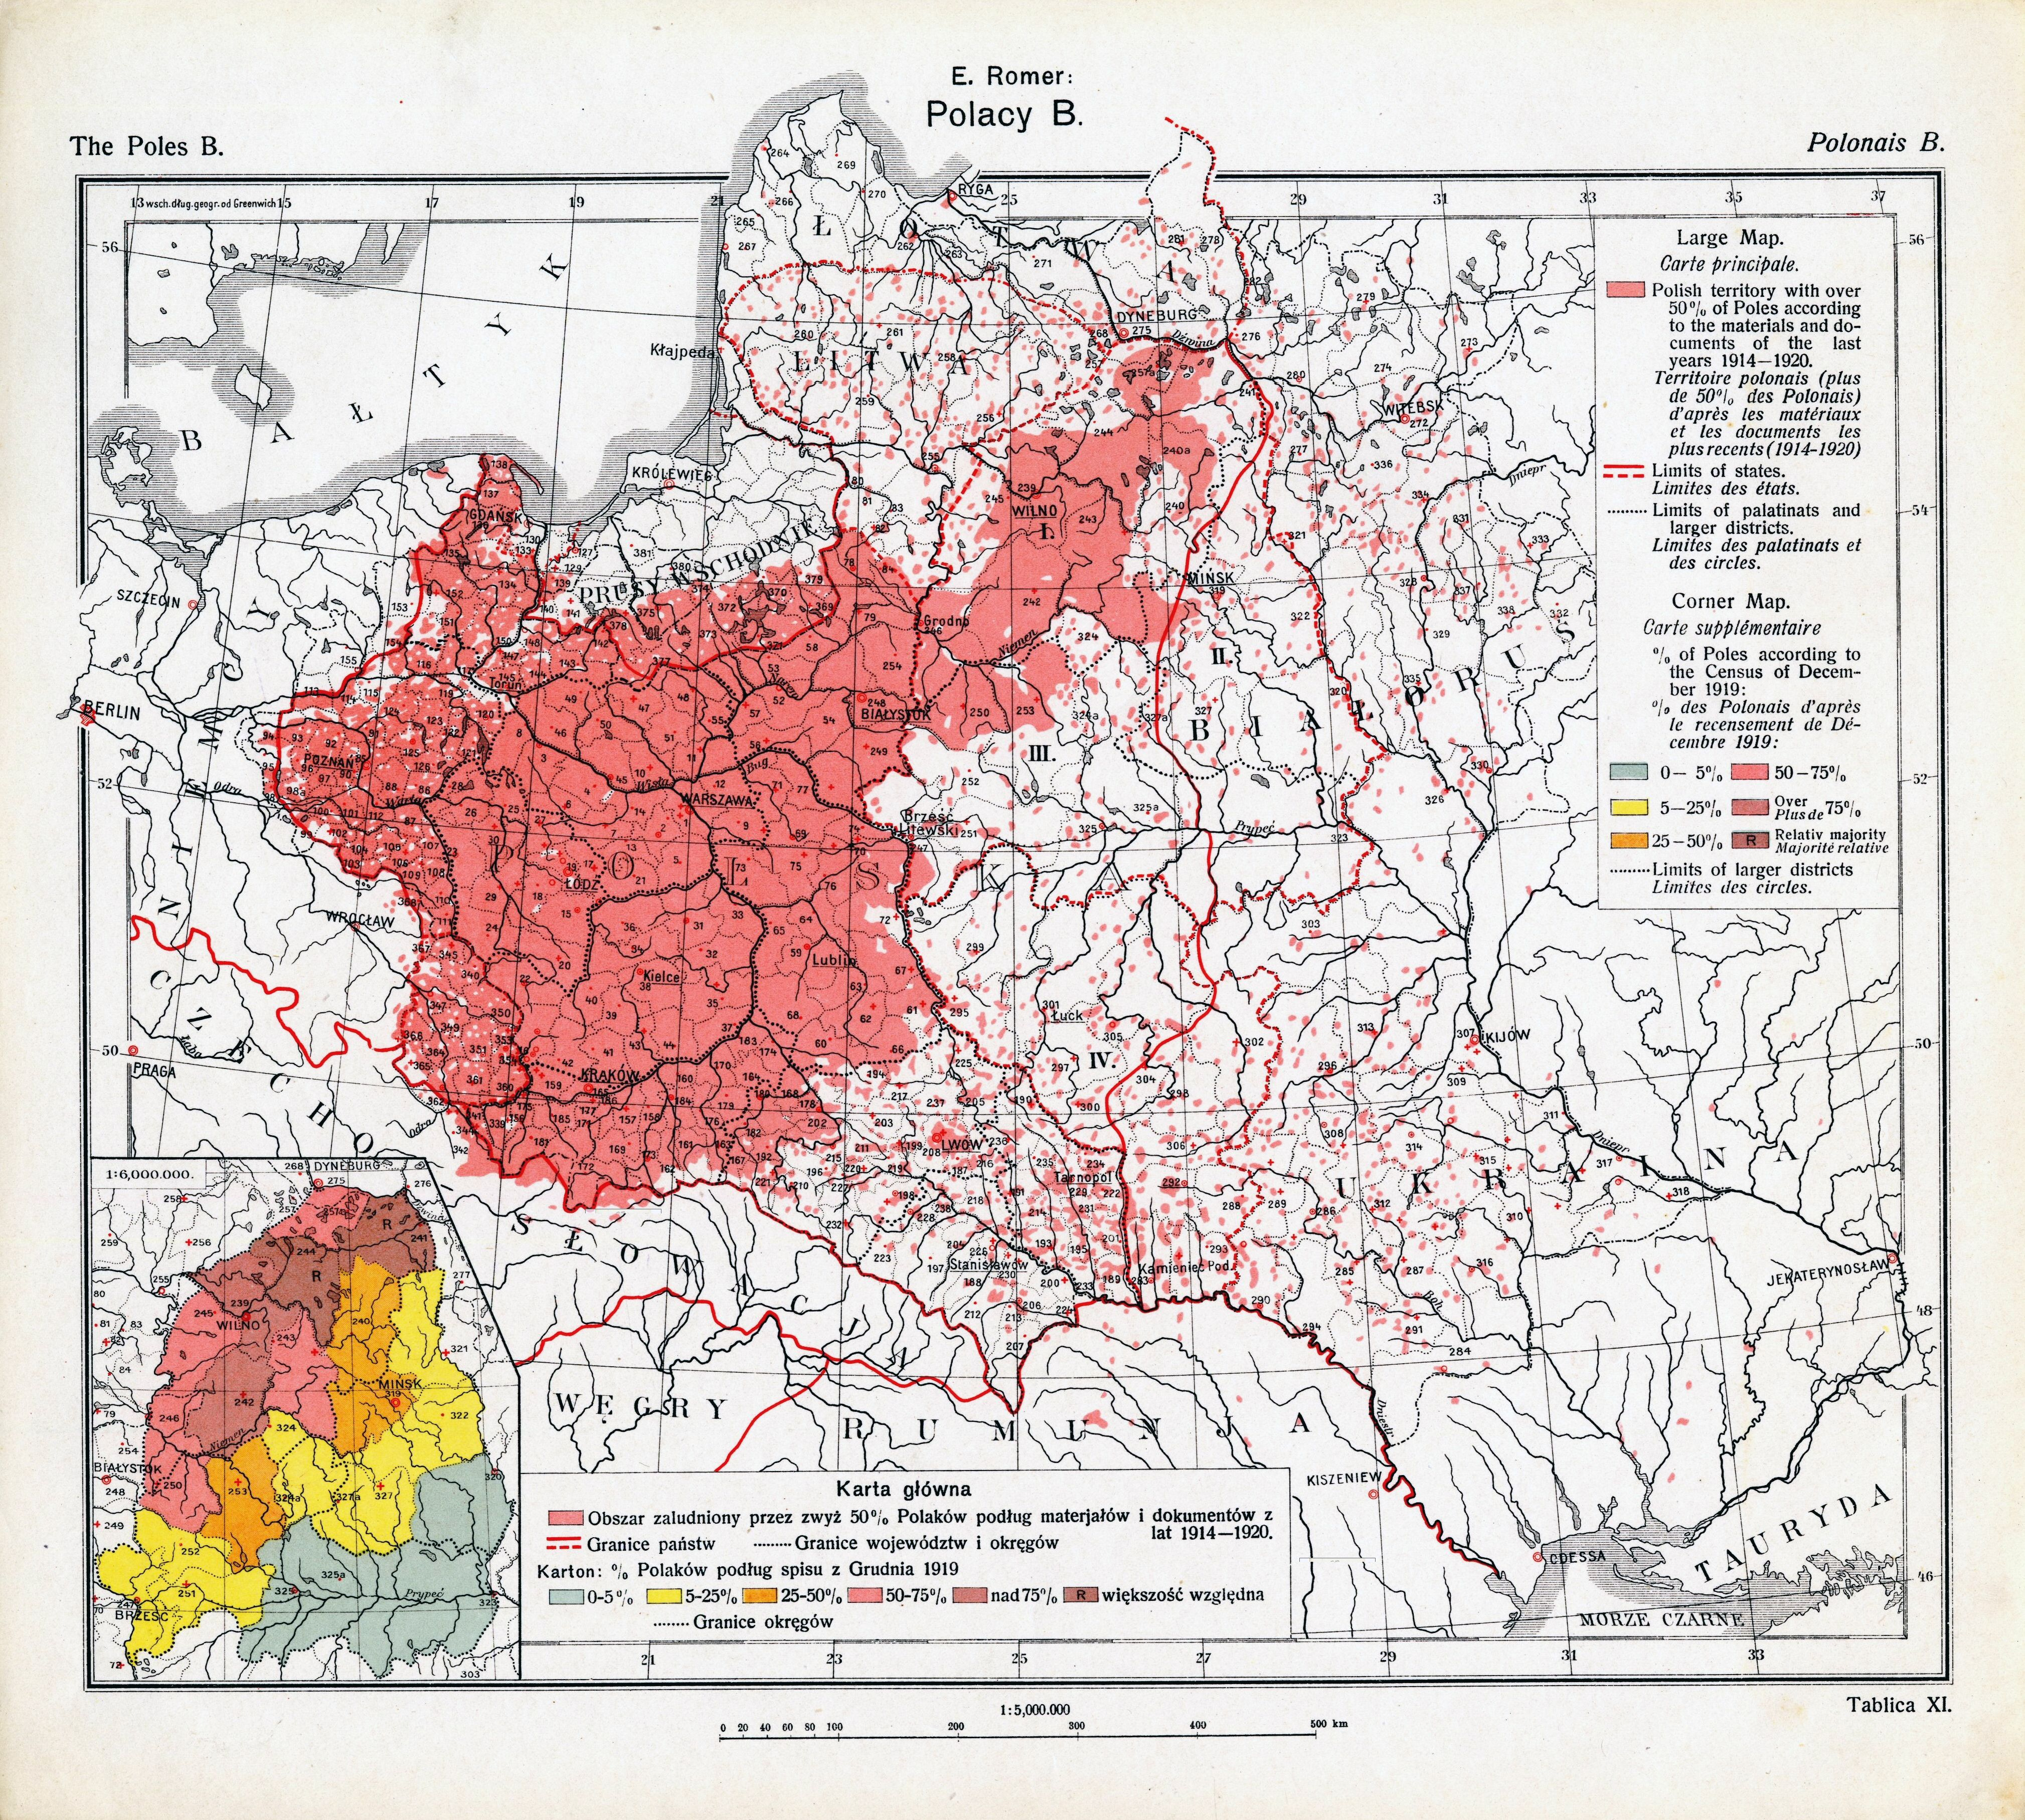 A 1921 map of Polish majority areas in Europe after the end of World